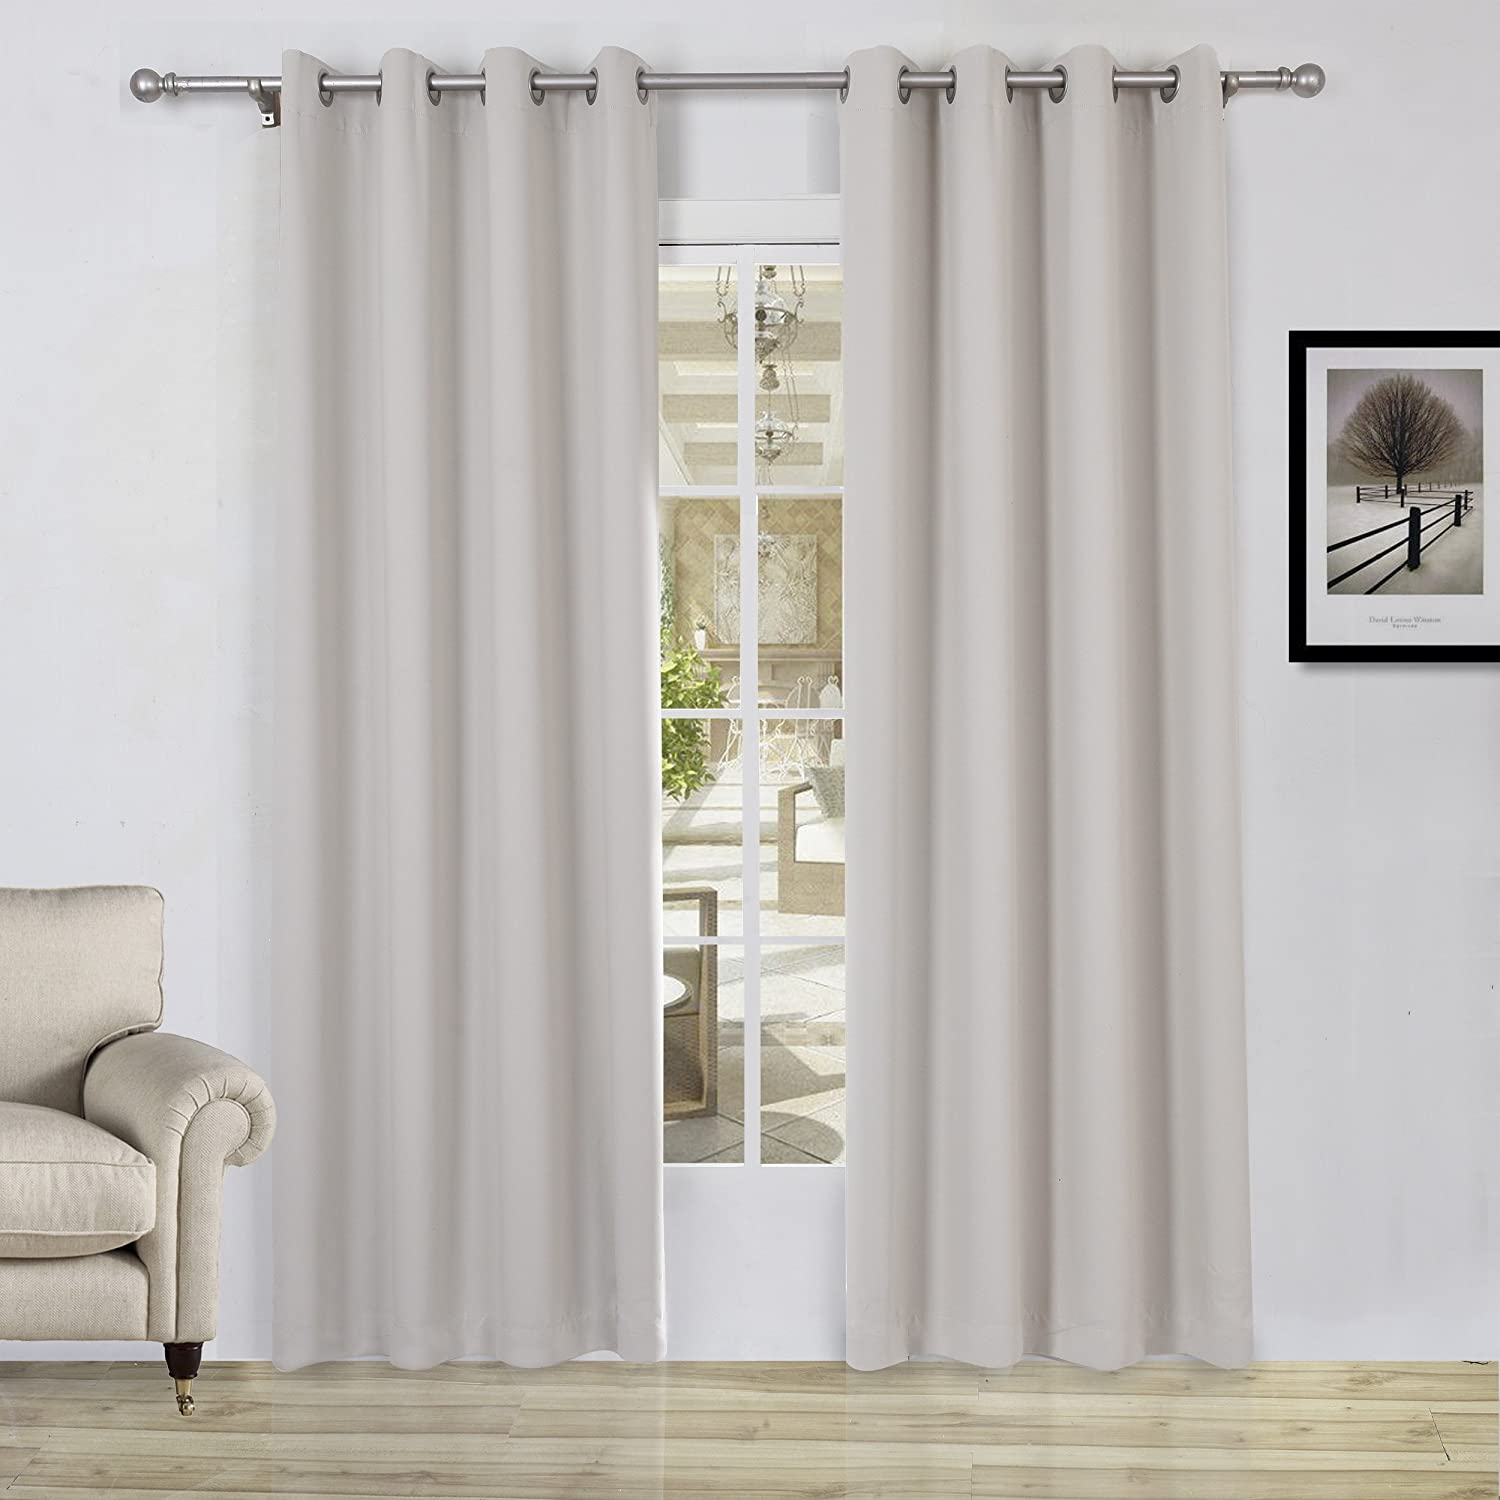 Window curtain lengths best 25 curtain length ideas on for 3 window curtain design